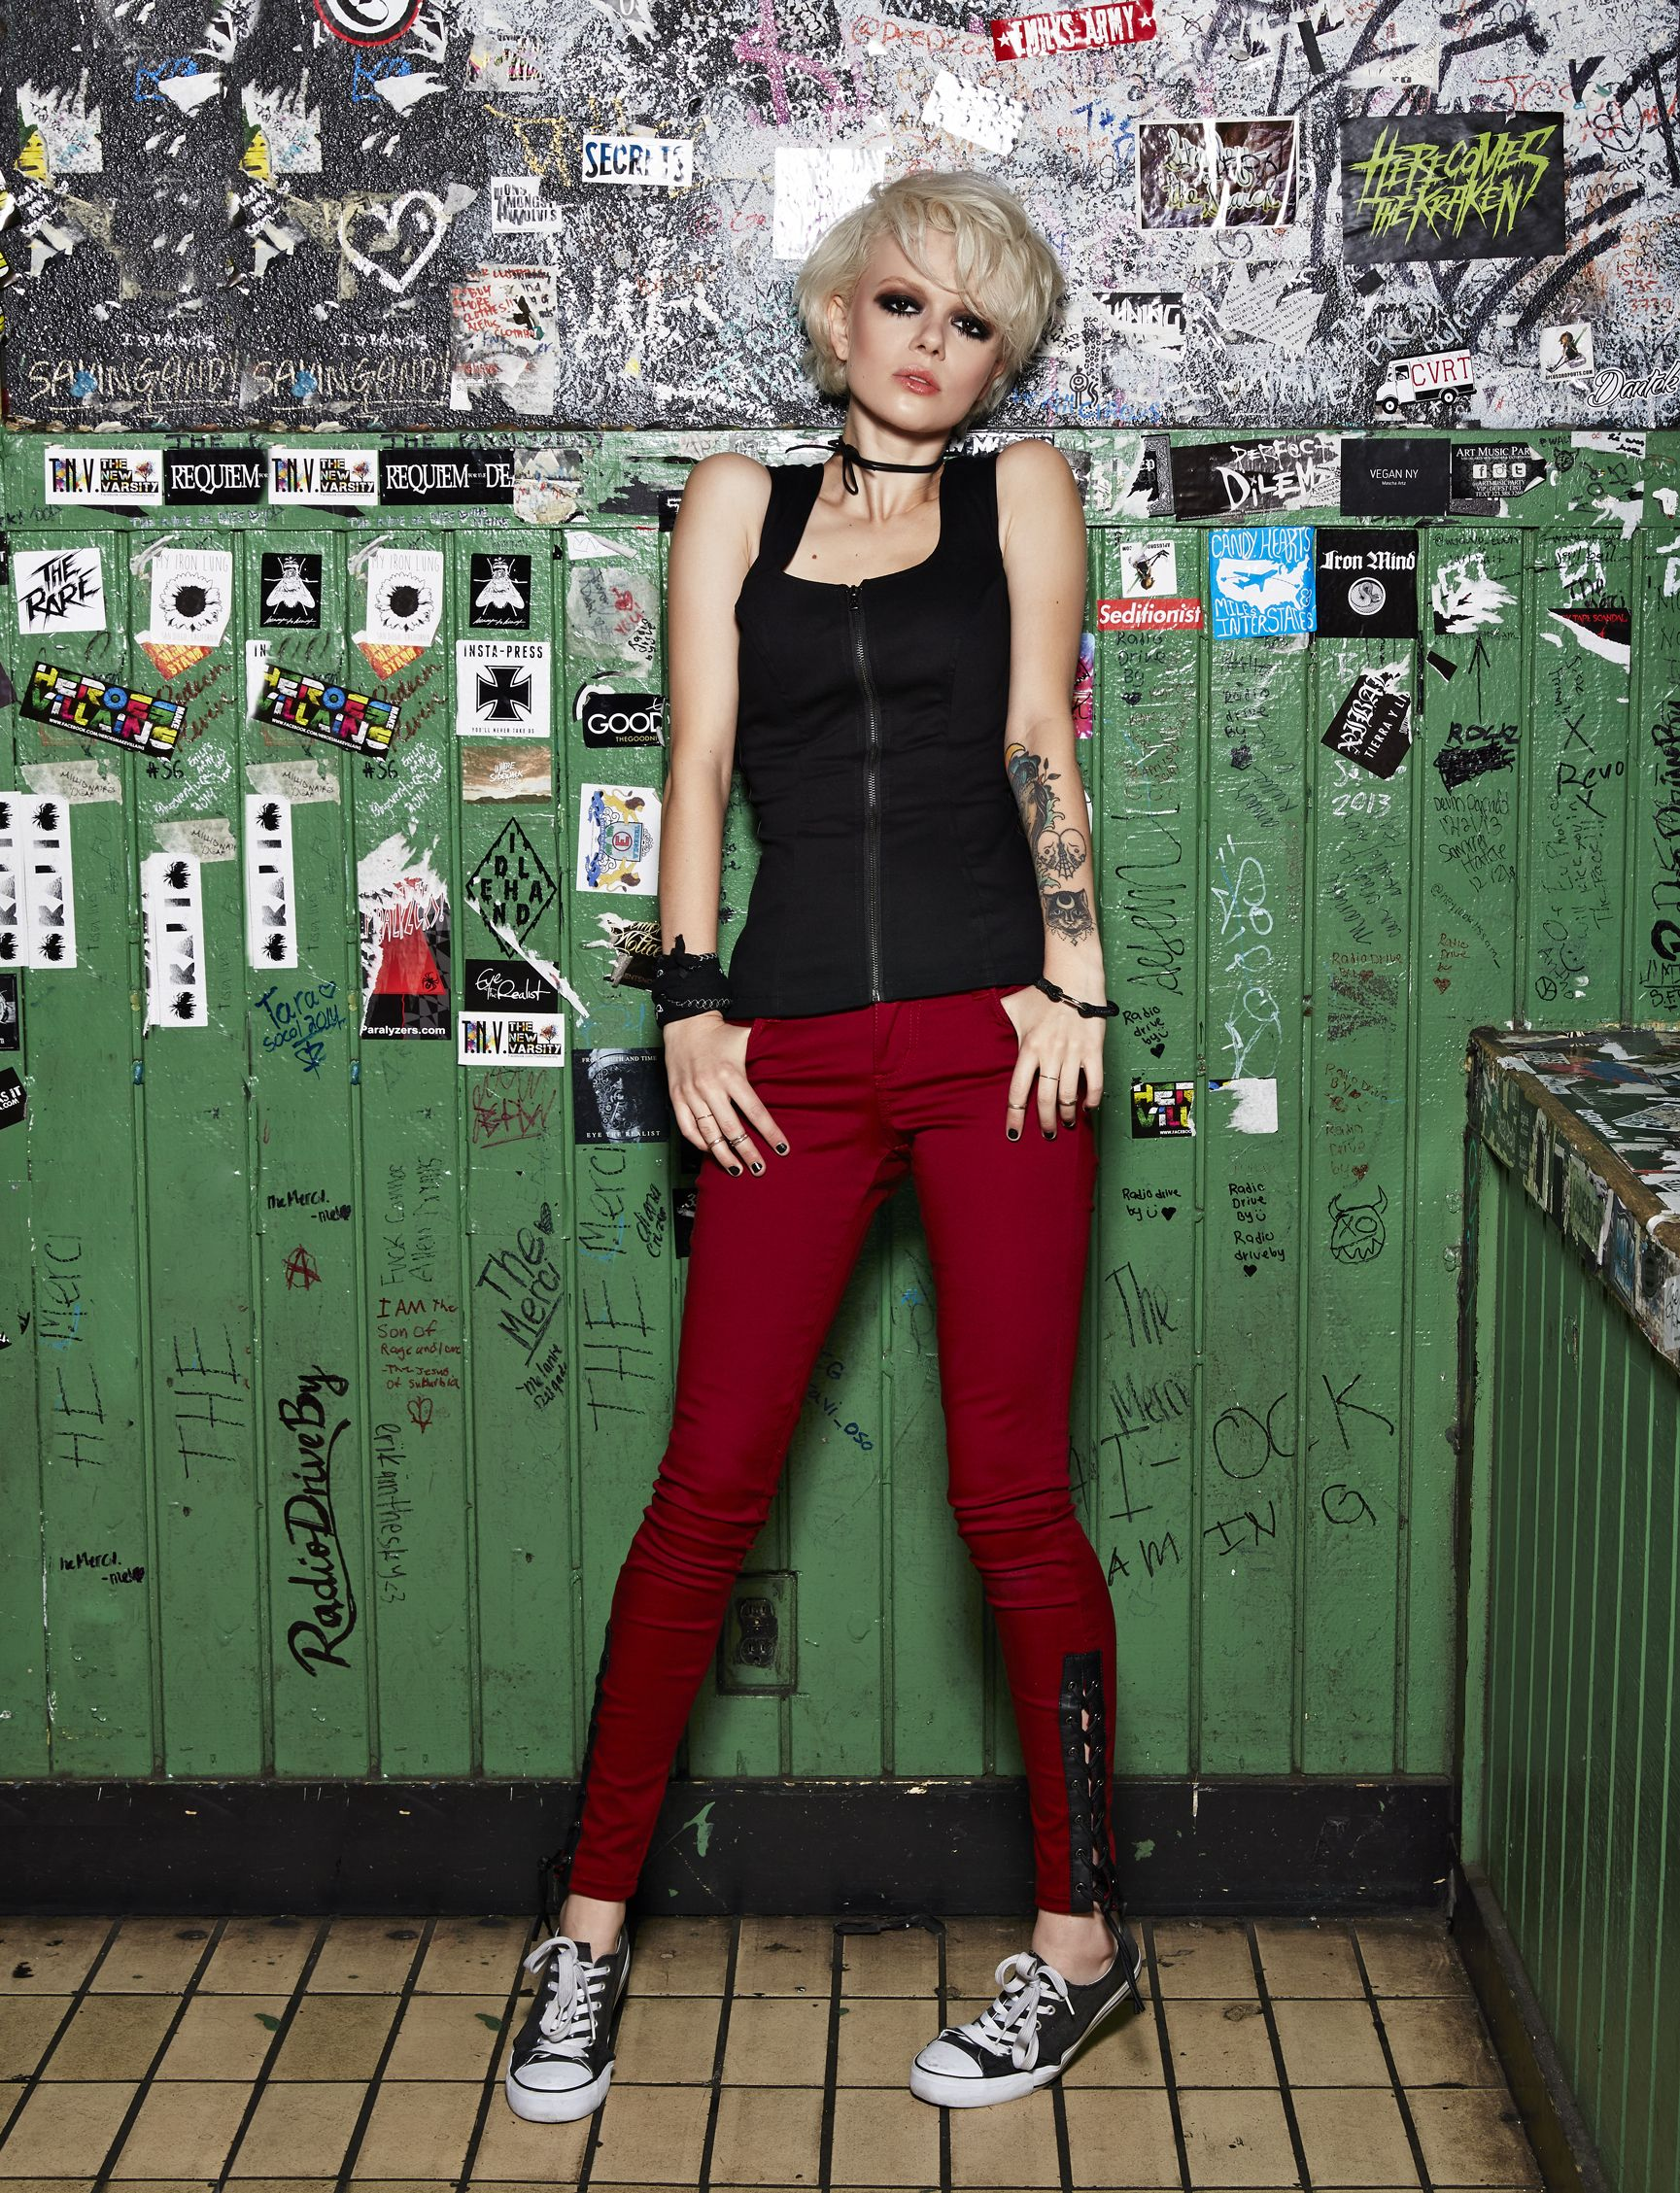 66c1375e59 Joan Jett x TRIPP NYC exclusively at Hot Topic | Full outfits | Joan ...